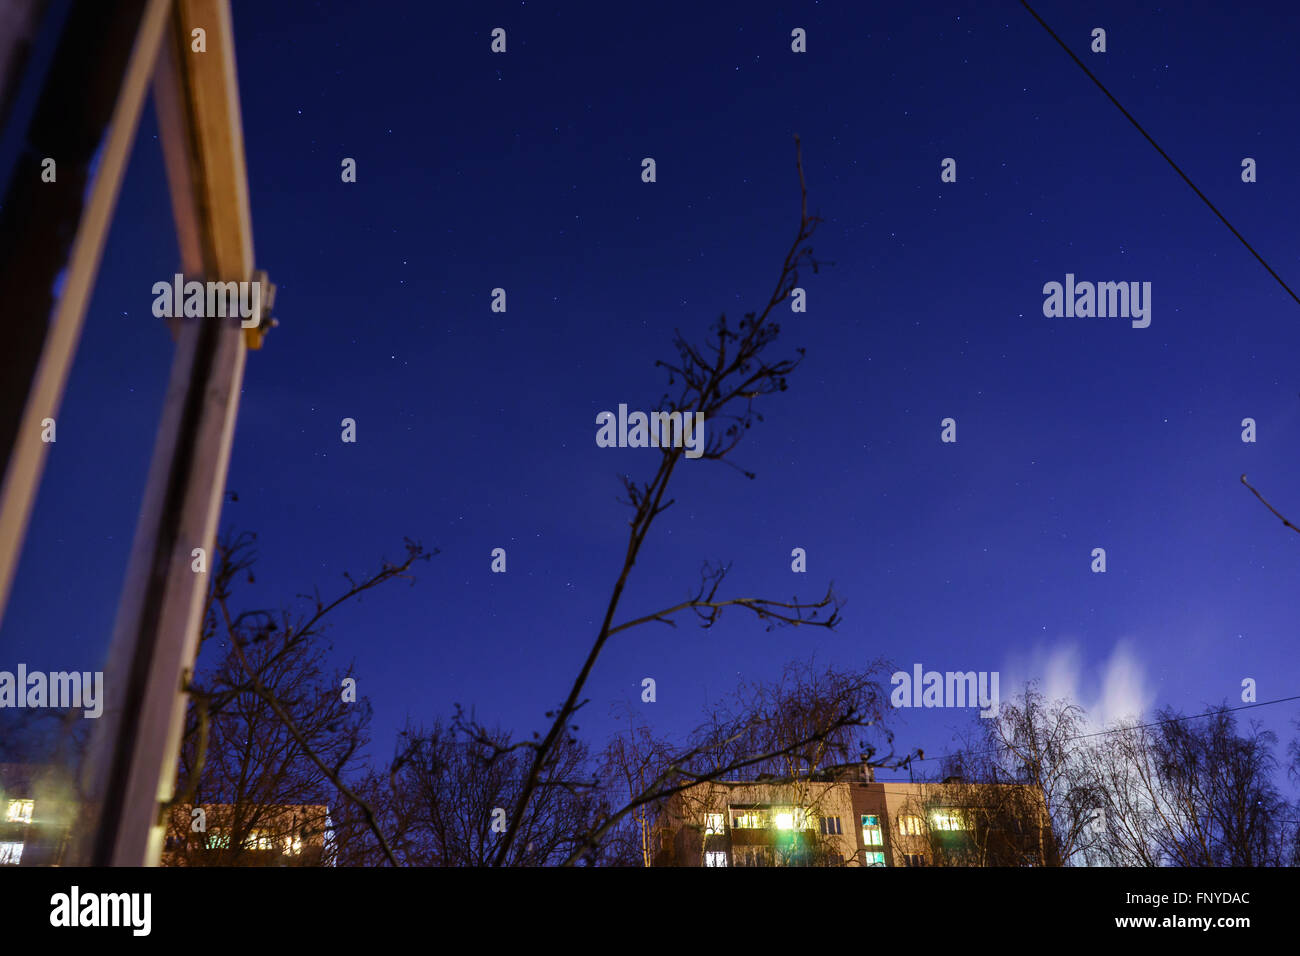 The starry sky and the moon over the buildings. View from my window. Moon and star dust in the sky. - Stock Image